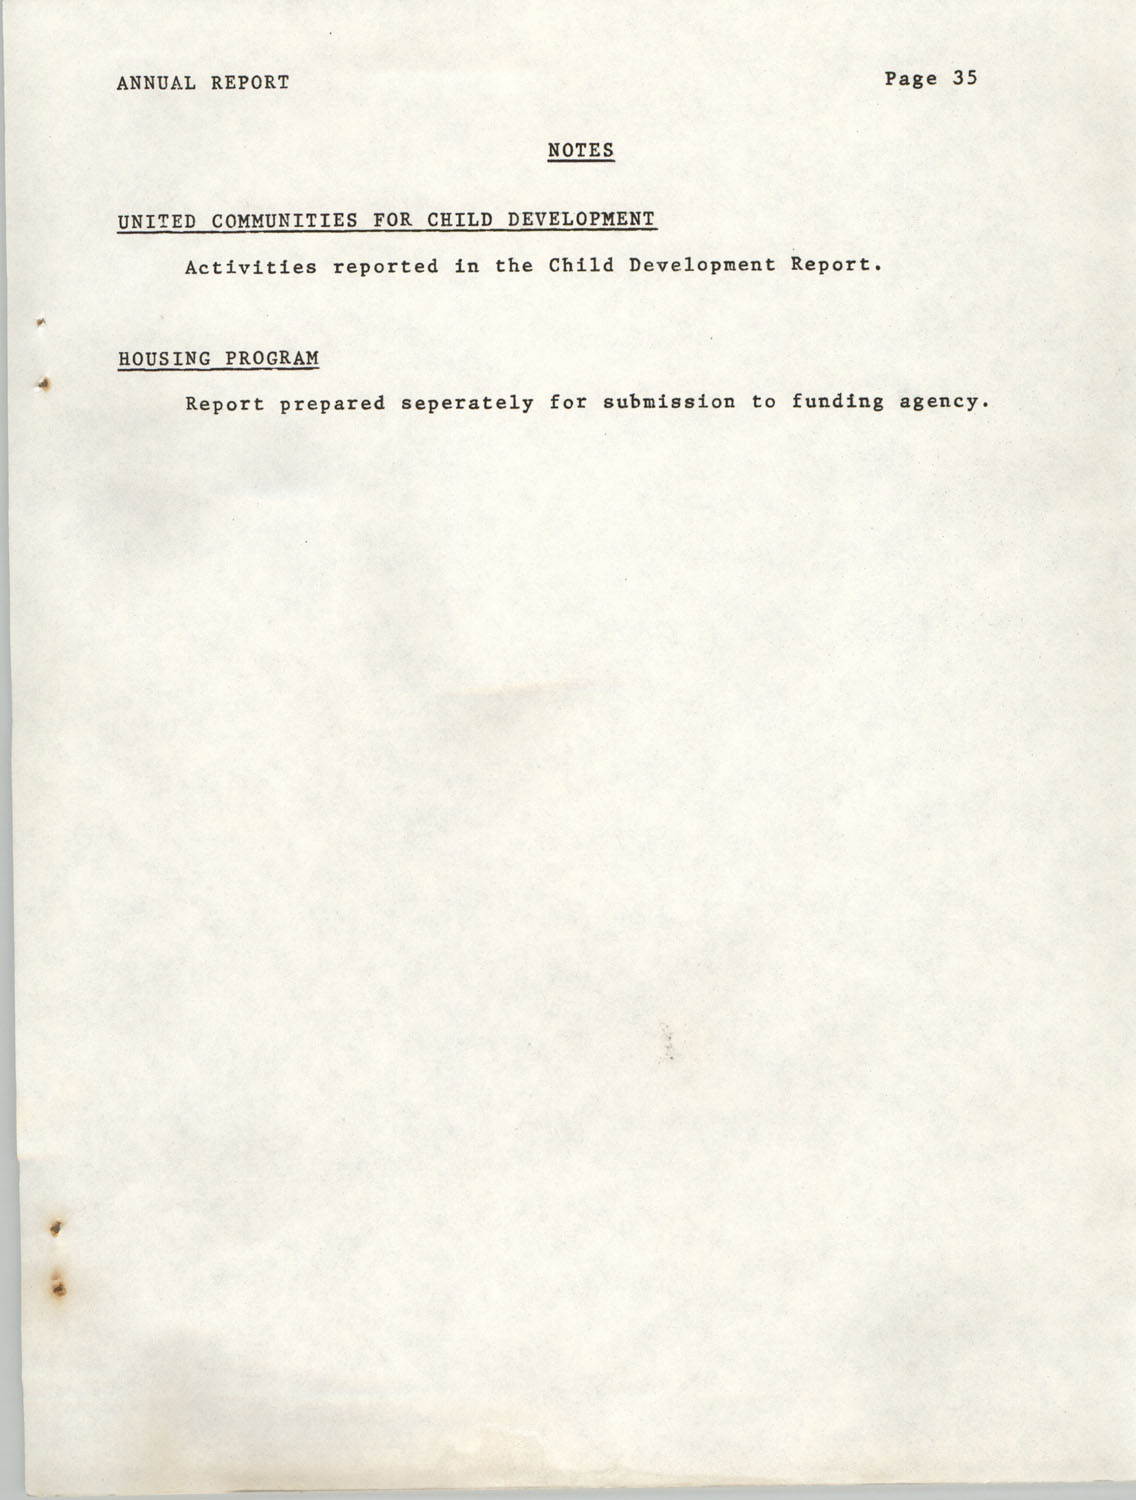 Annual Report, Penn Community Services, 1974, Page 35